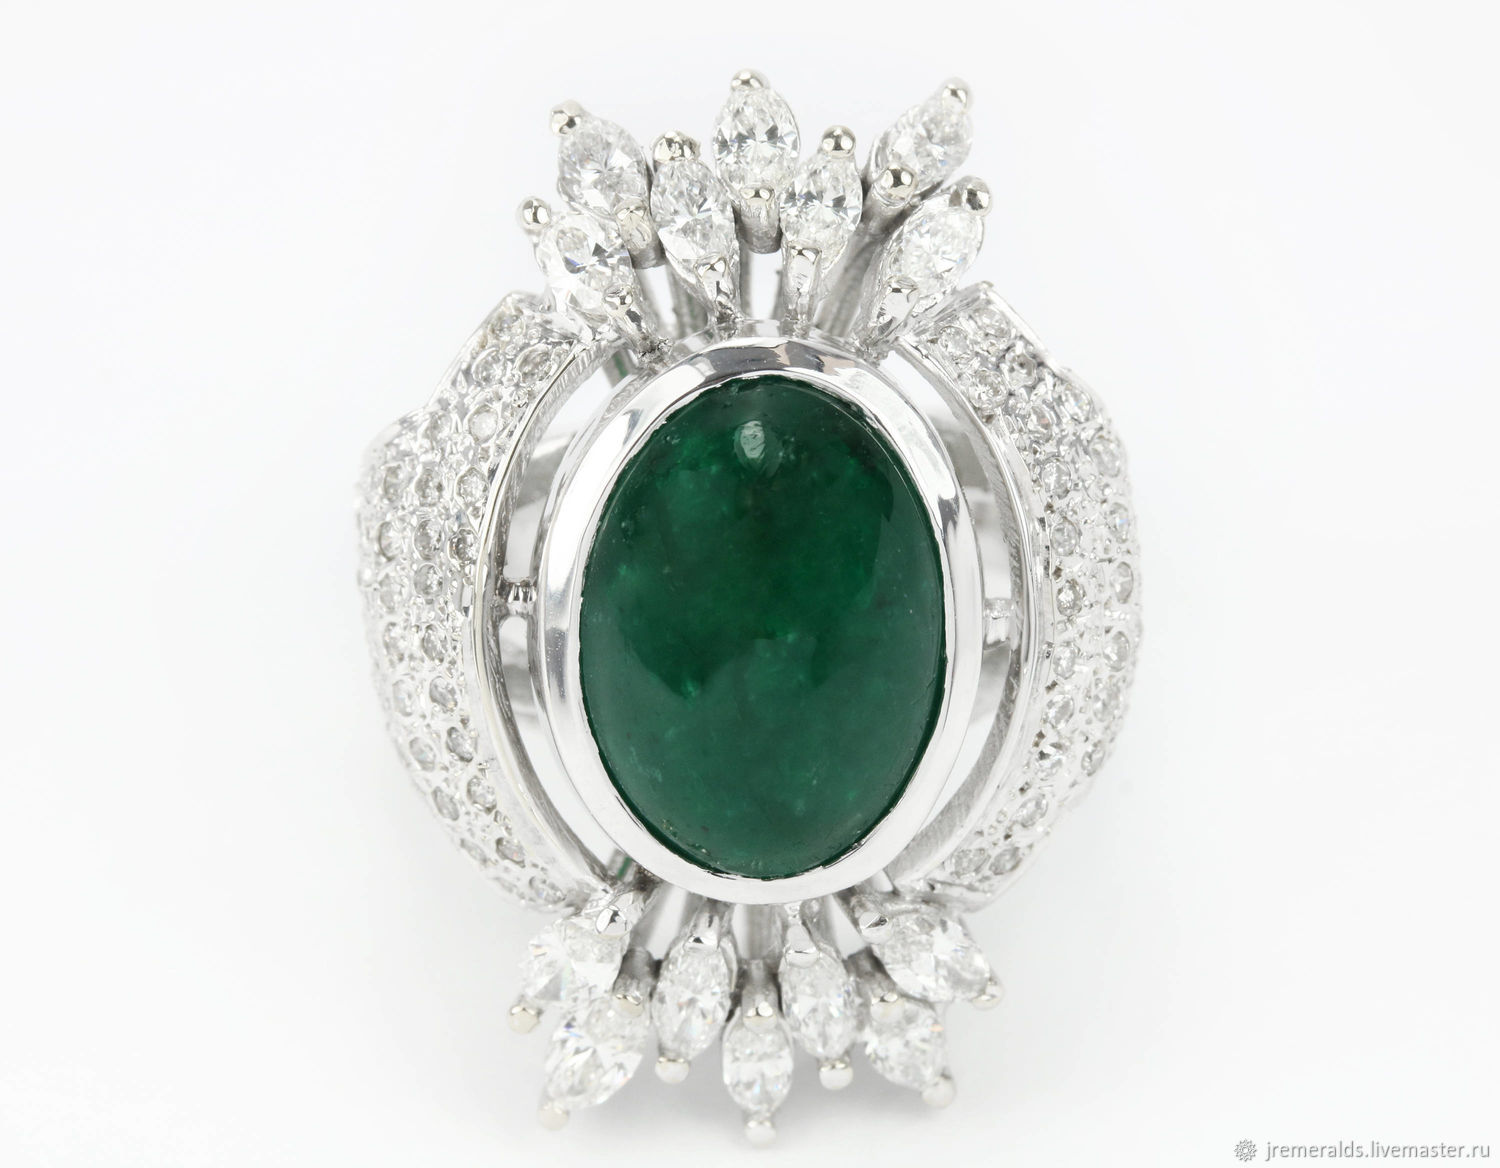 6.85cts Estate Colombian Emerald Cabochon & Diamond Cocktail Ring 18k-, Rings, West Palm Beach,  Фото №1